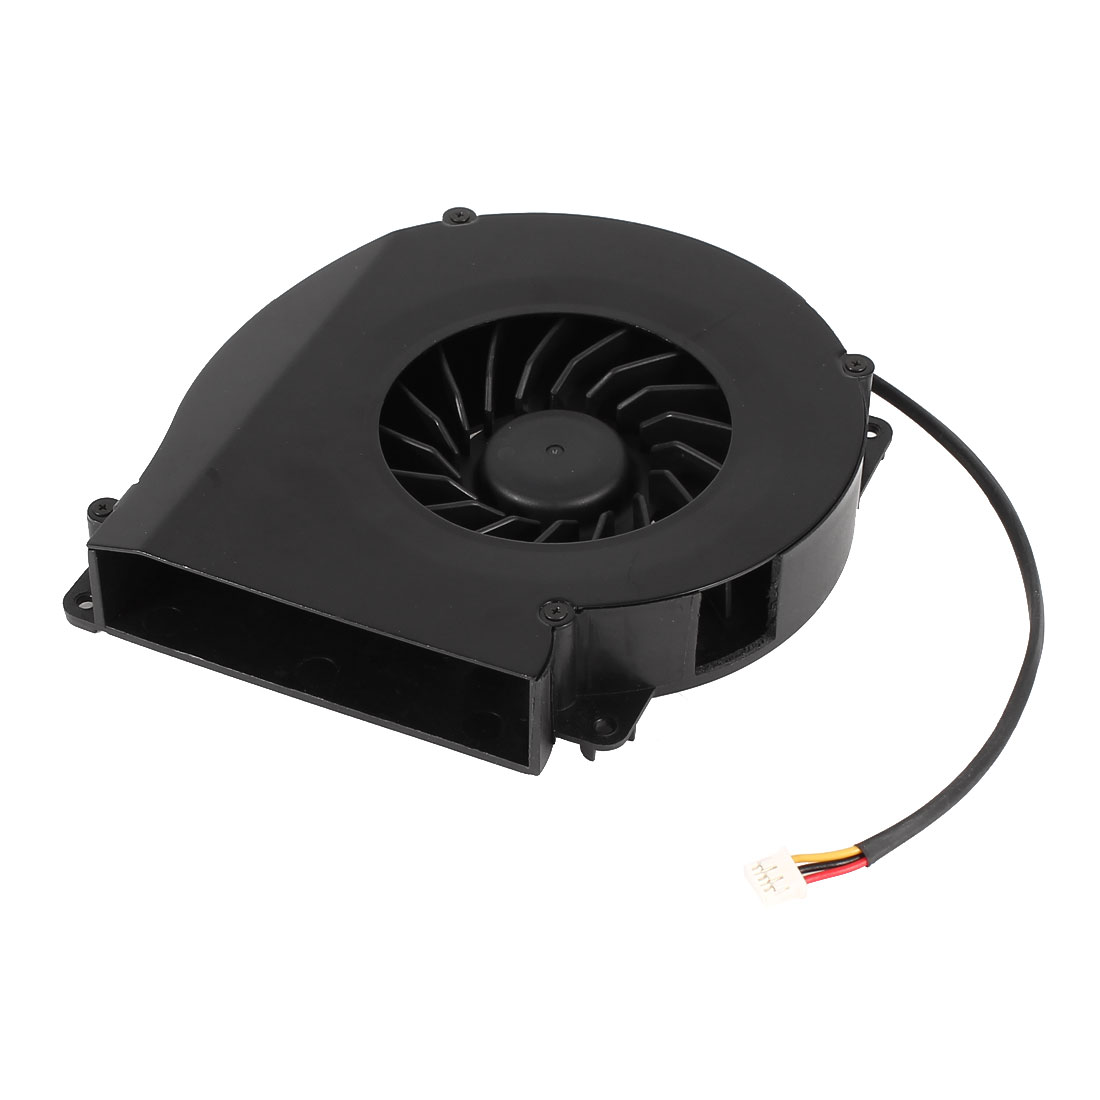 DC Brushless 3 Wires Cooling Blower Fan Cooler 11020S 110mmx20mm Black 12V 0.4A